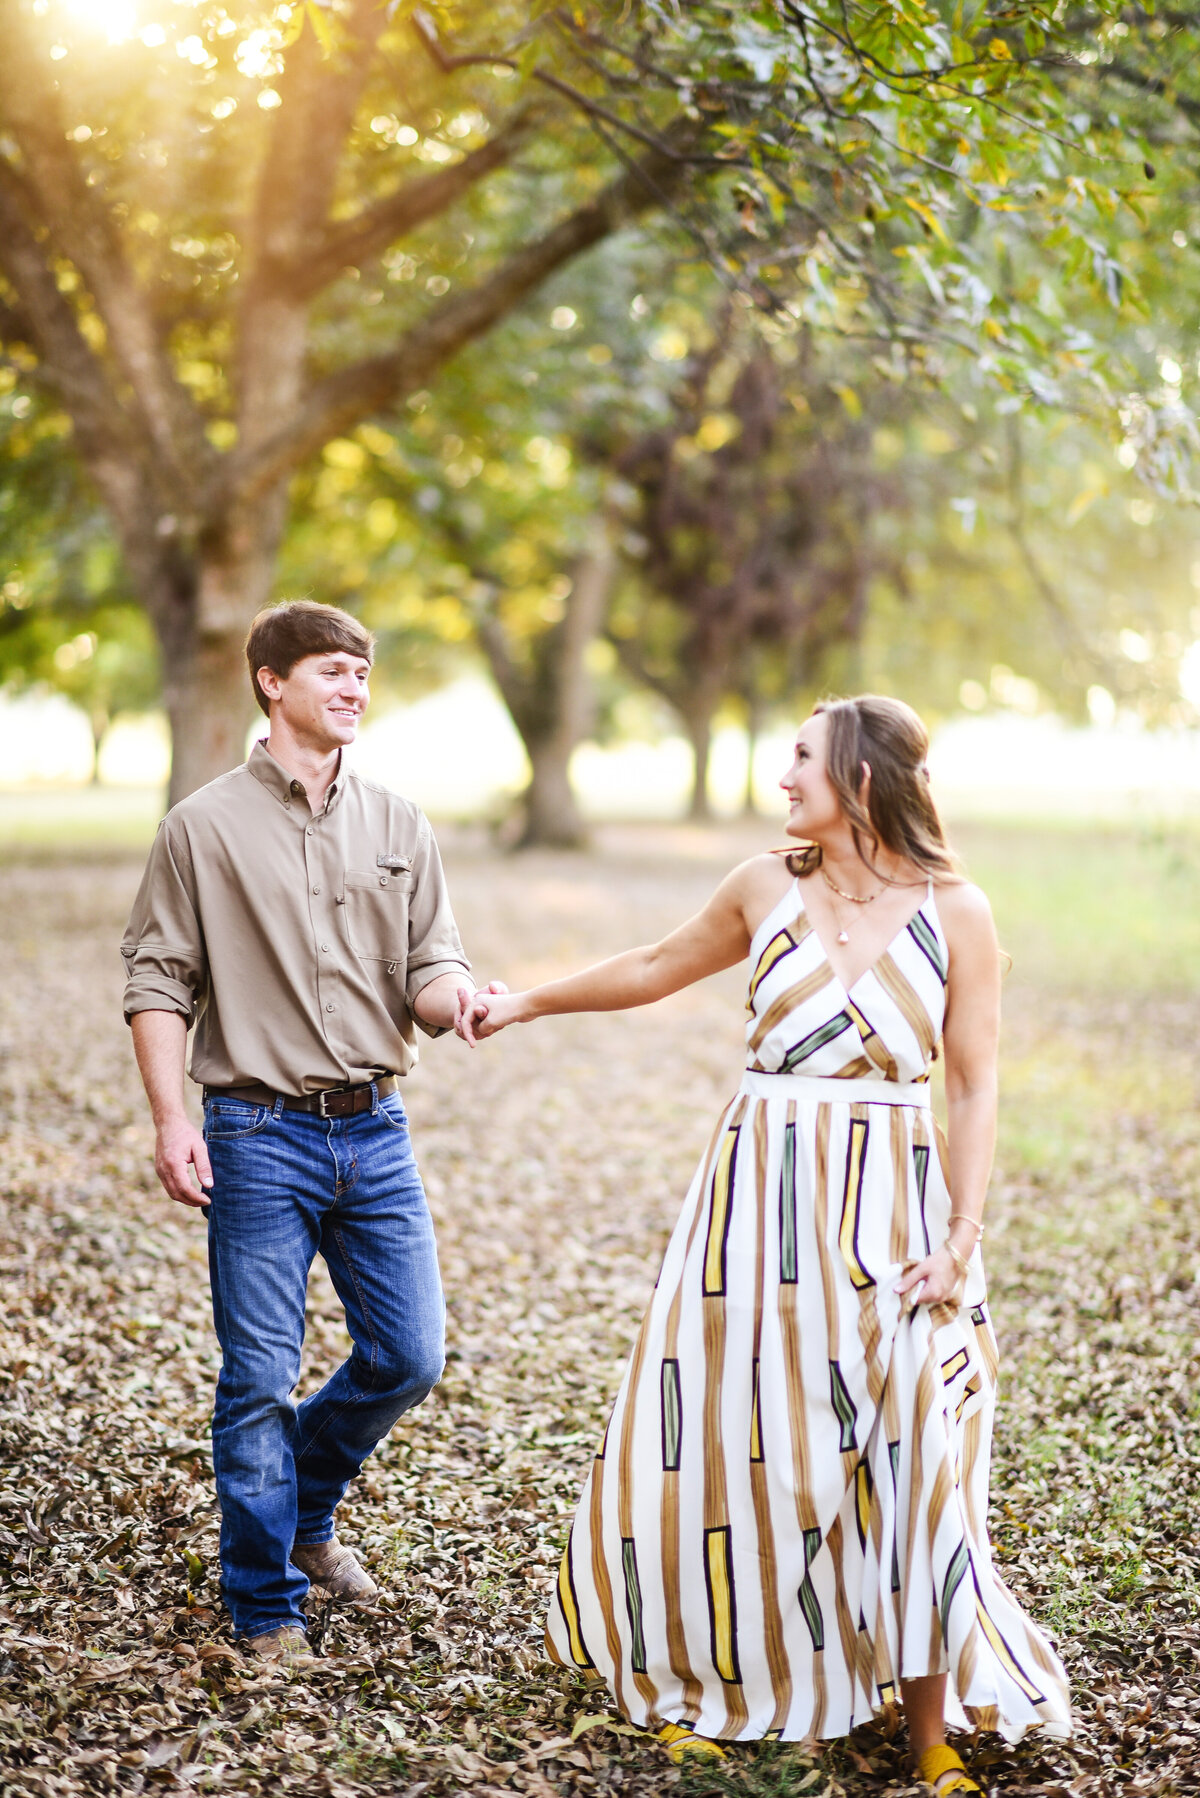 Beautiful Mississippi Engagement Photography: Couple walks hand-in-hand in a sunlit Mississippi delta pecan orchard